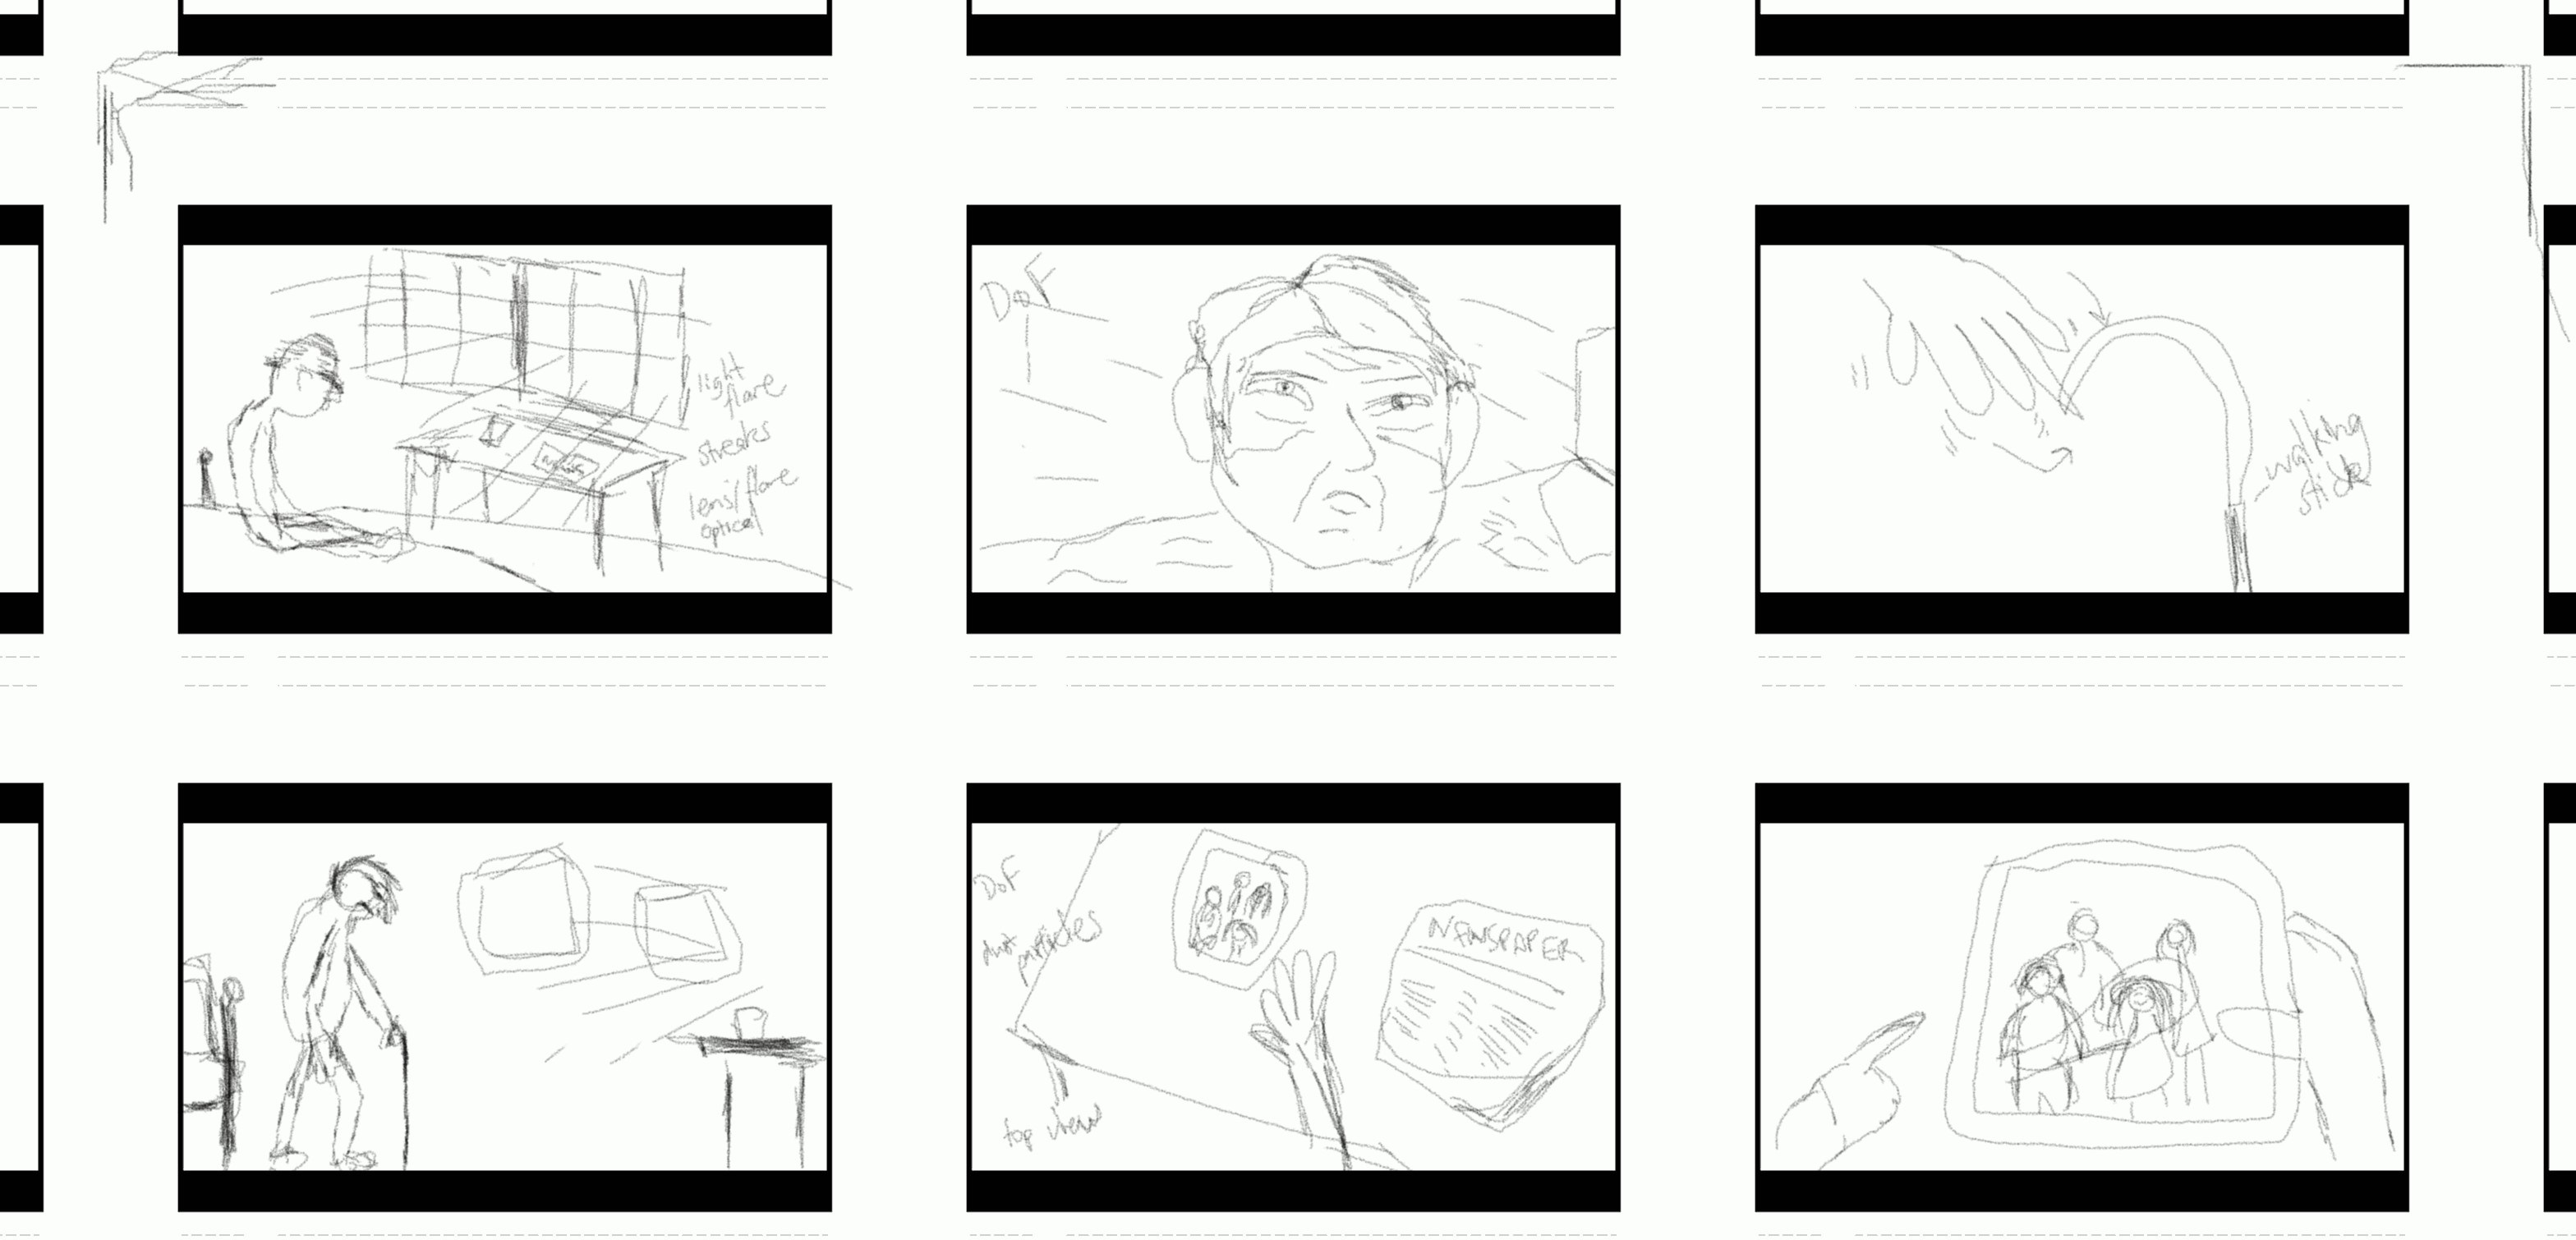 Pre-production phase: Creating an awesome idea for an animated short film